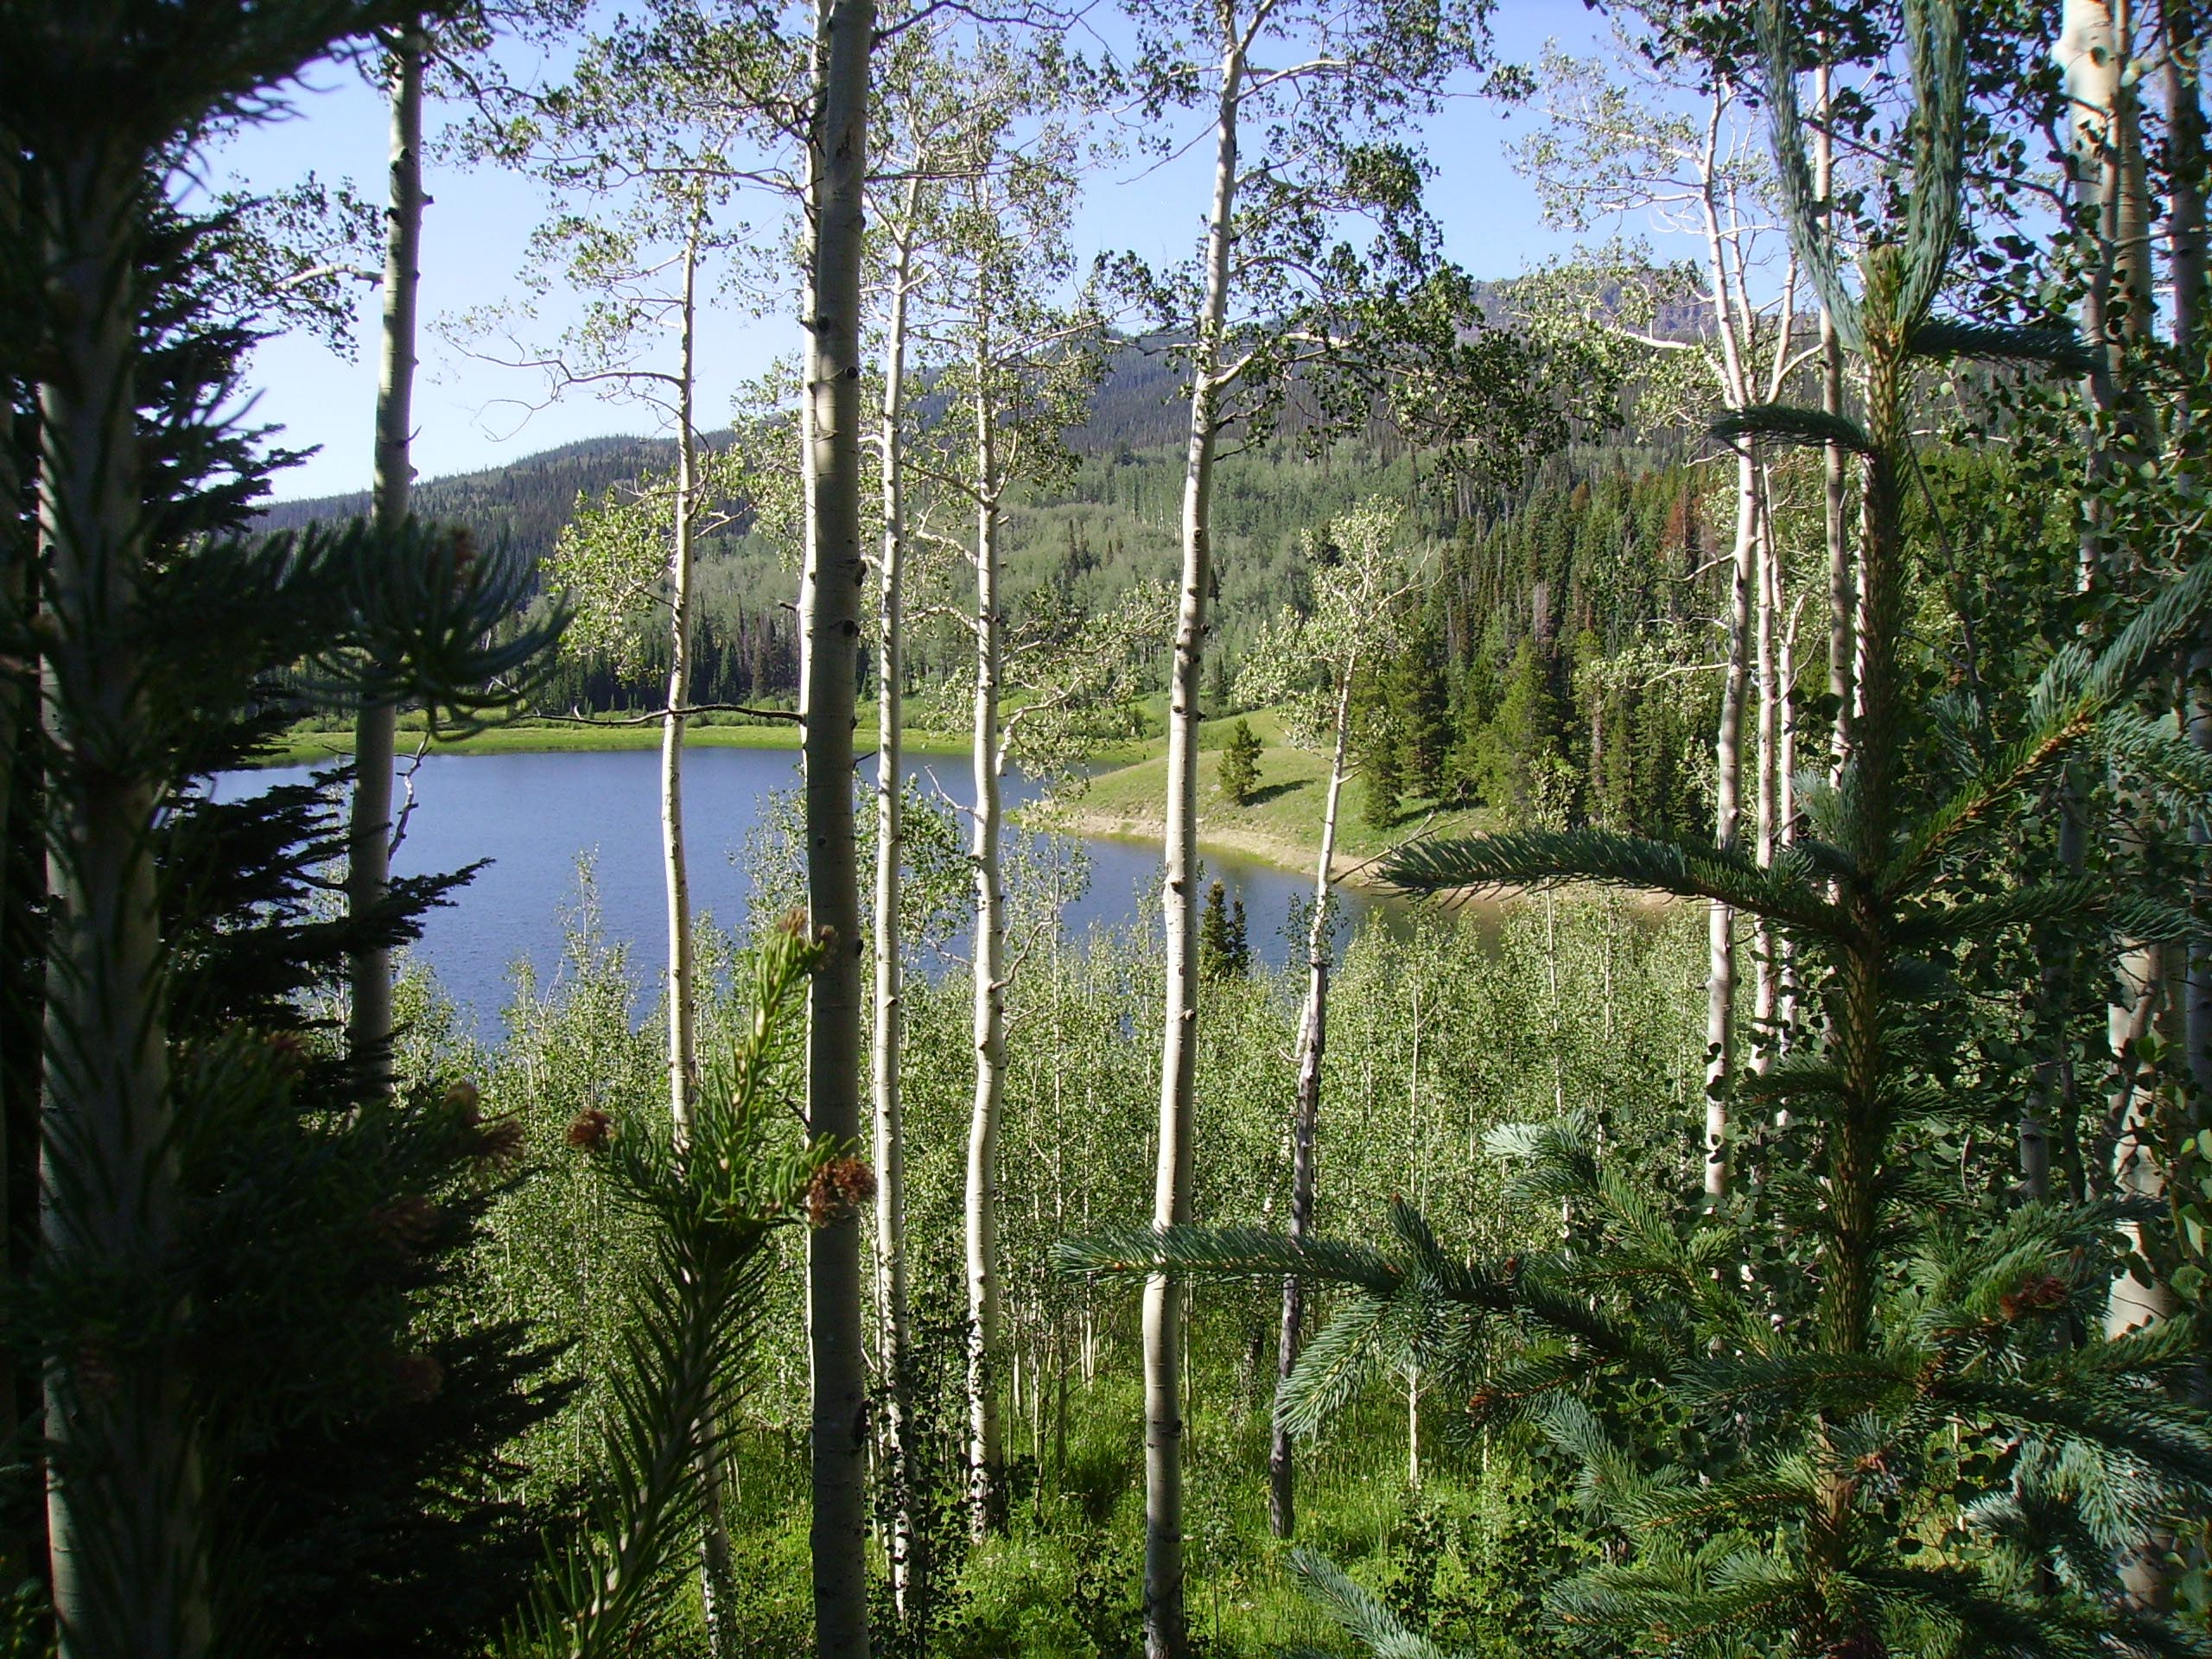 Photo of aspens with Chapman Reservoir in background